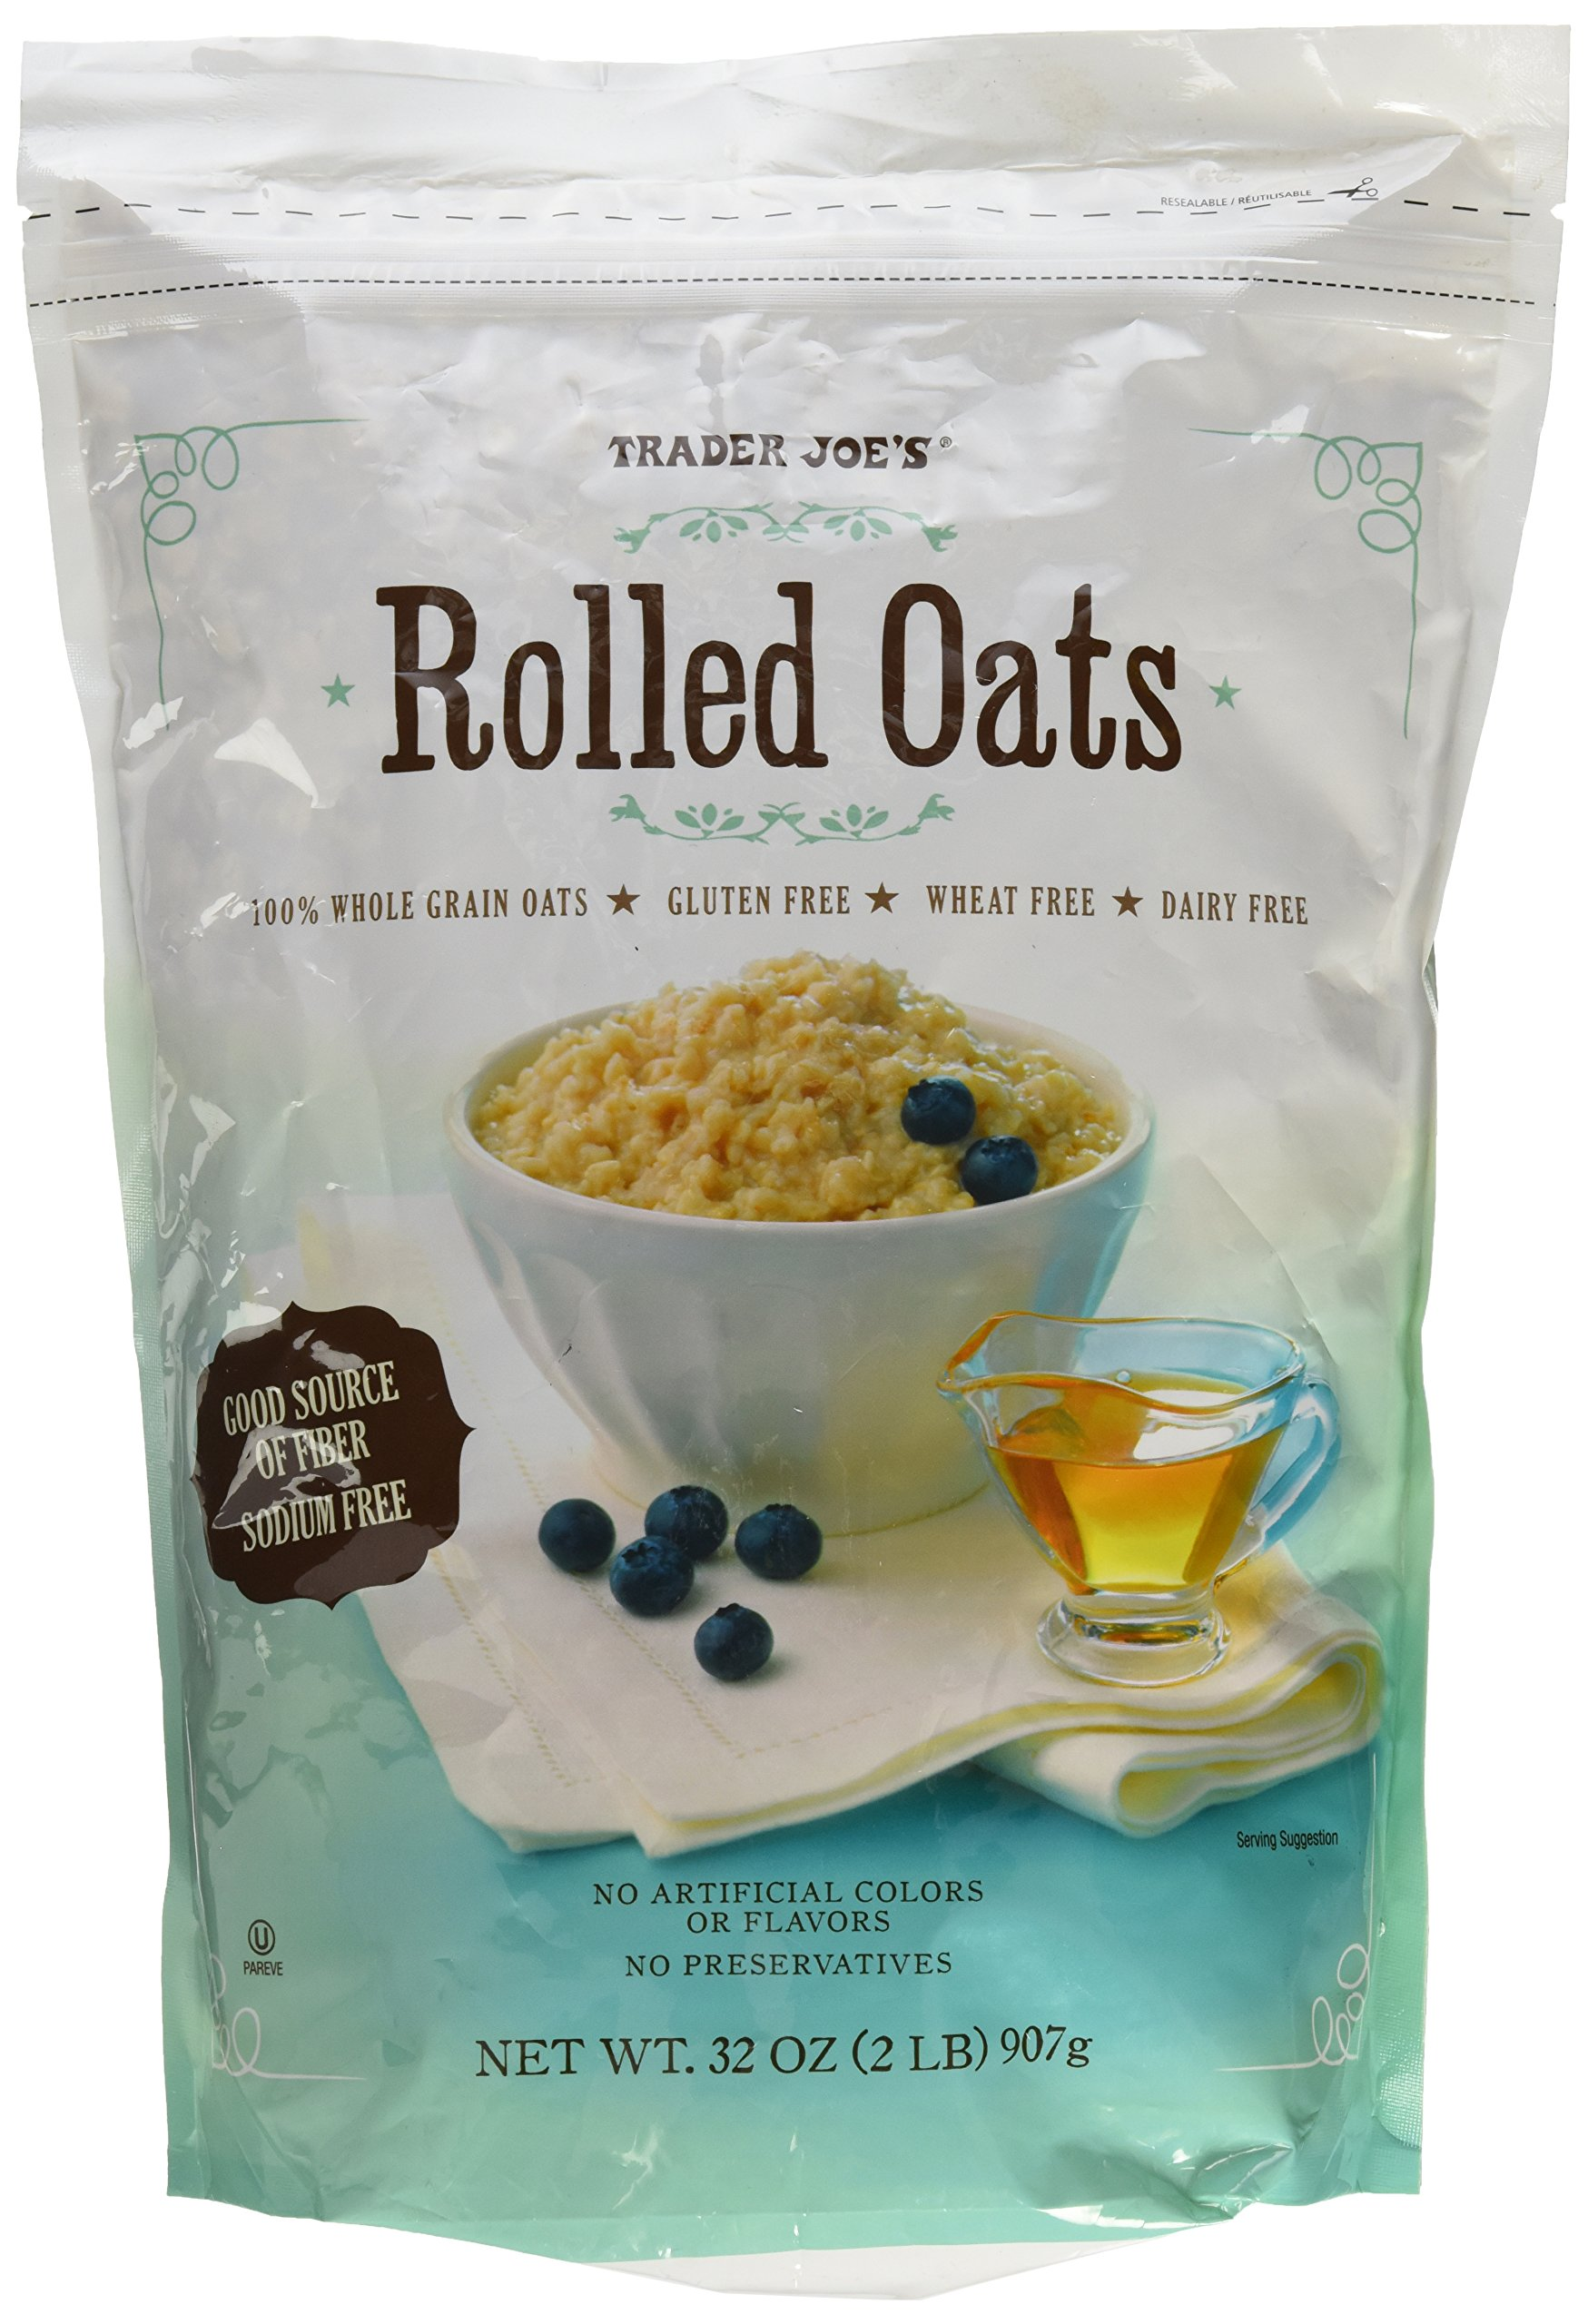 Trader Joes Gluten Free and Wheat Free Rolled Oats, 32 OZ